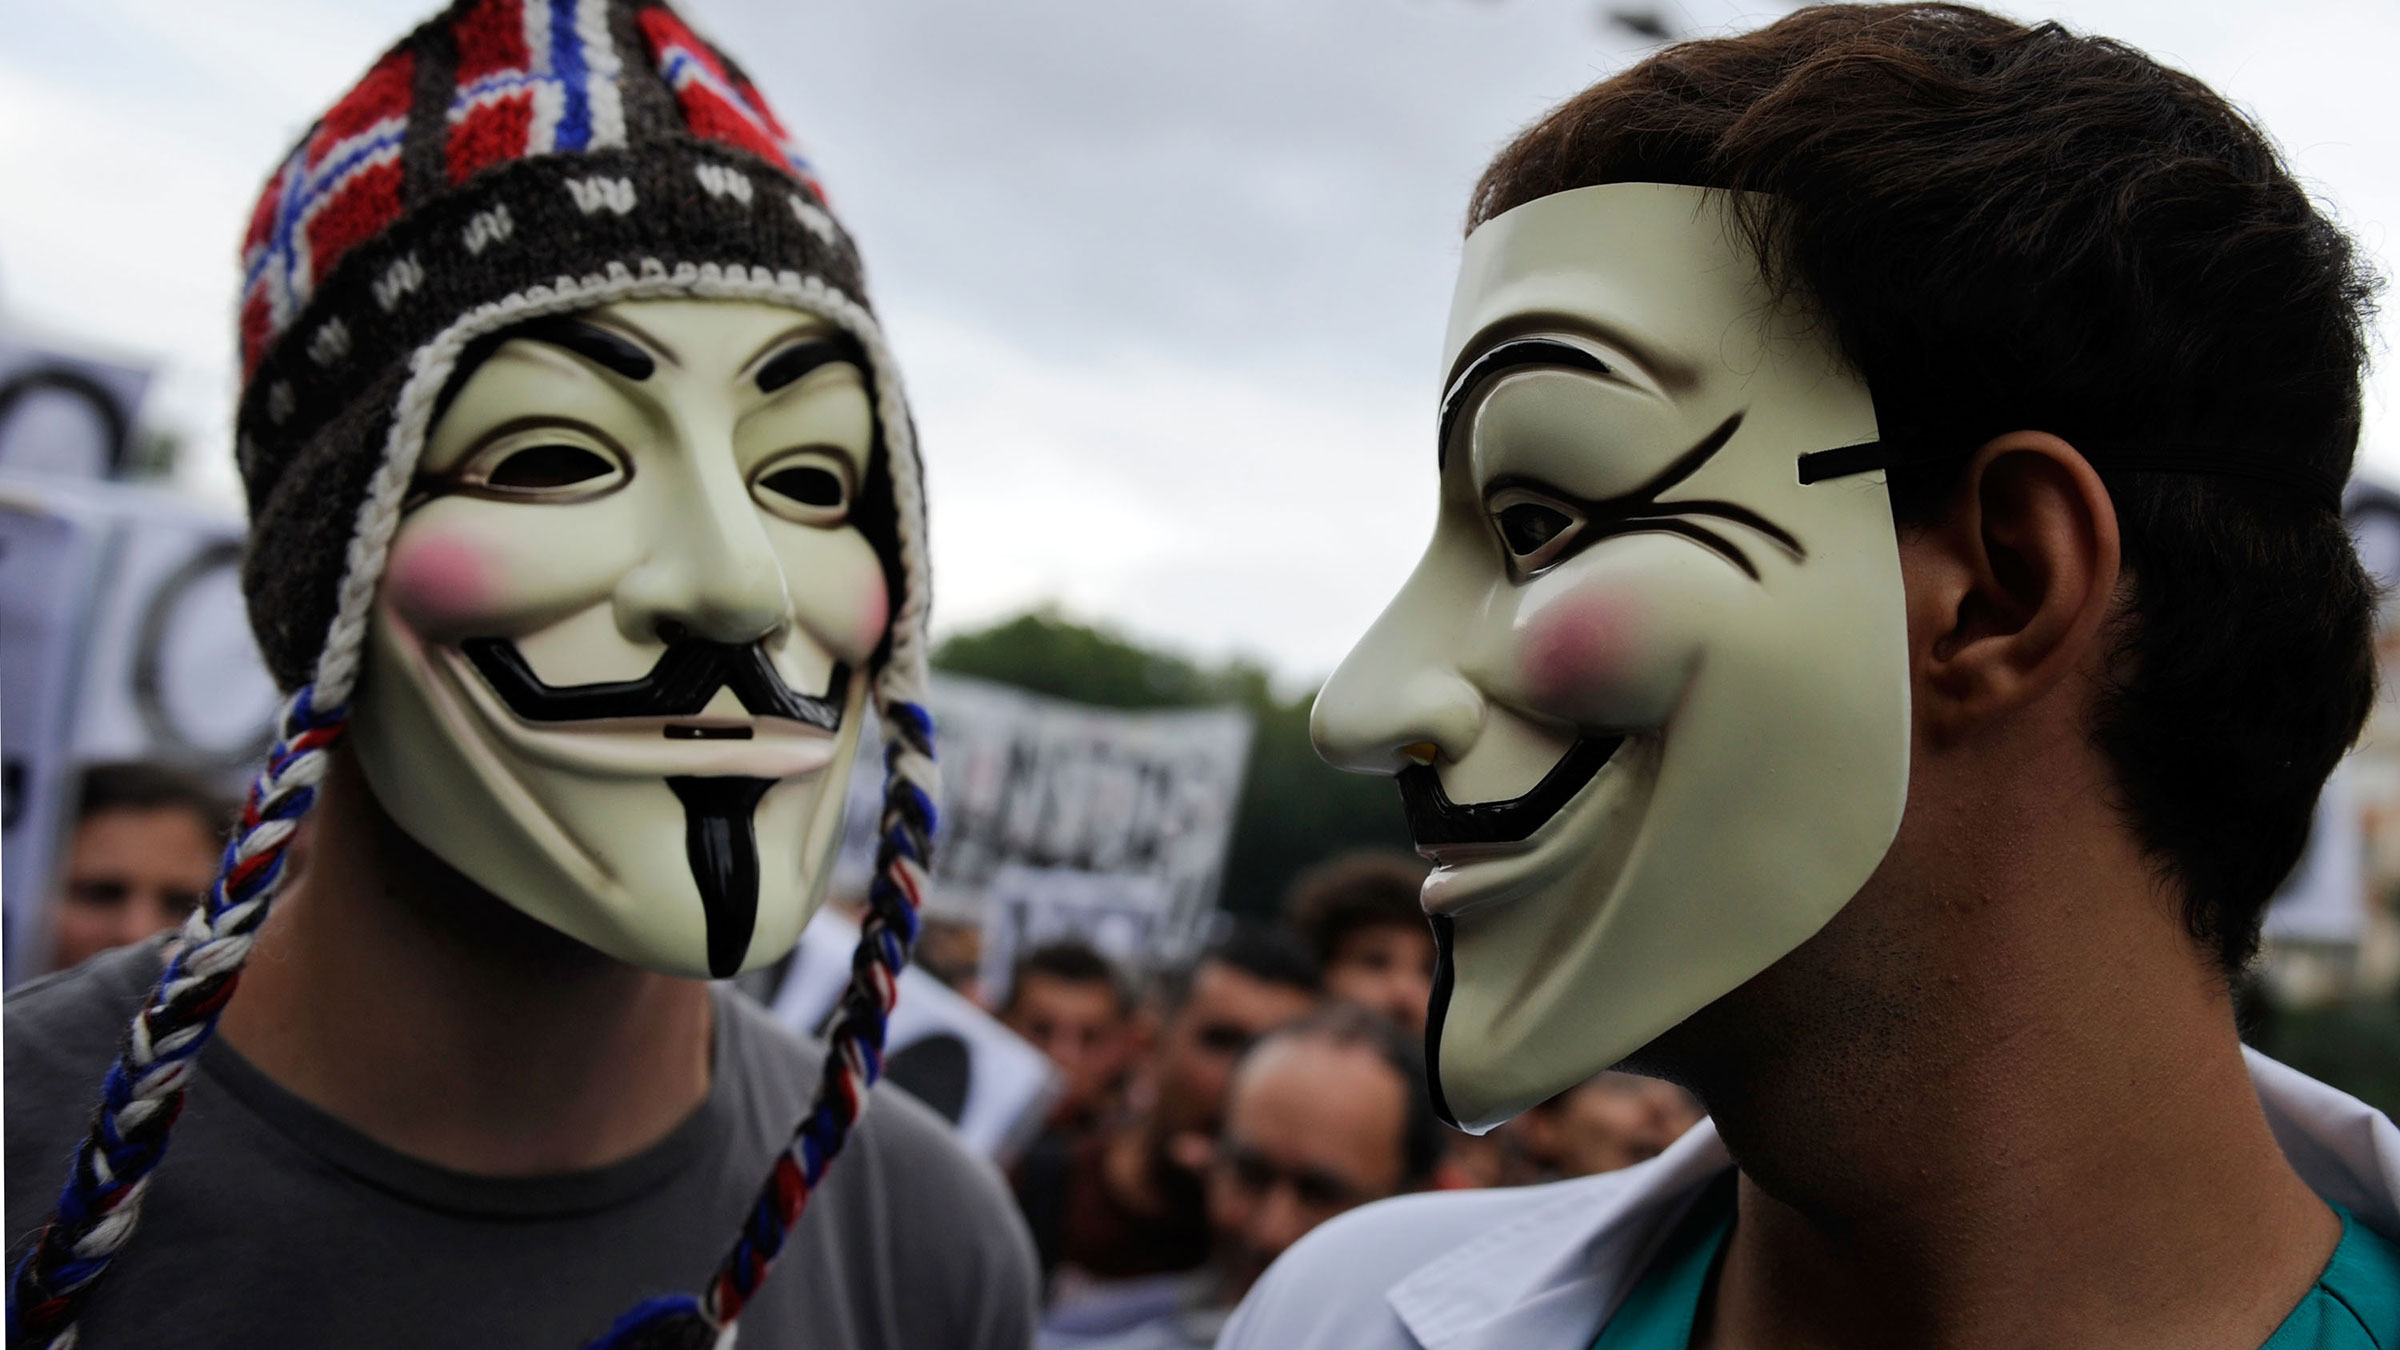 Masked demonstrators at a protest in Spain